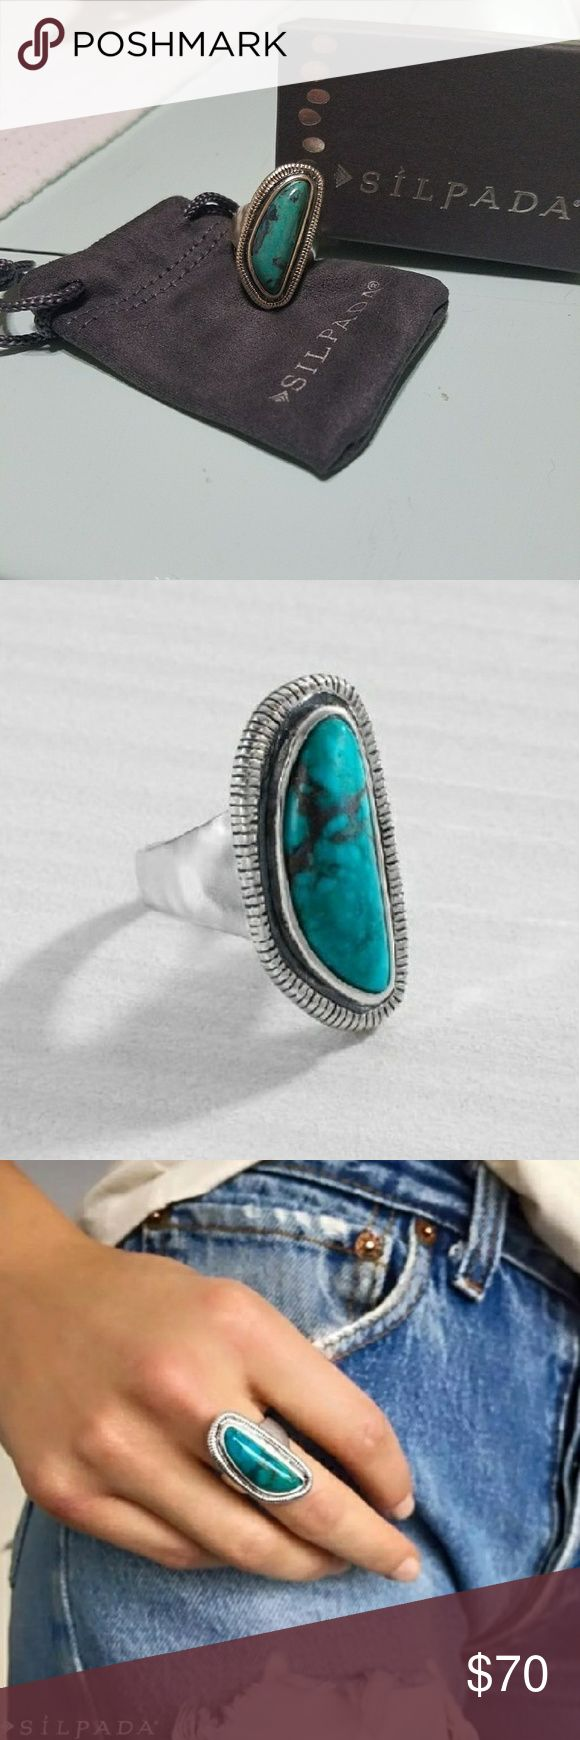 Silpada Turquoise Ripple Ring. Size 7. Authentic Turquoise Silpada Ring. I will ship in box. Size 7. It is beautiful and brand new, never worn! Use that offer button! ⛵⚓ Silpada Jewelry Rings